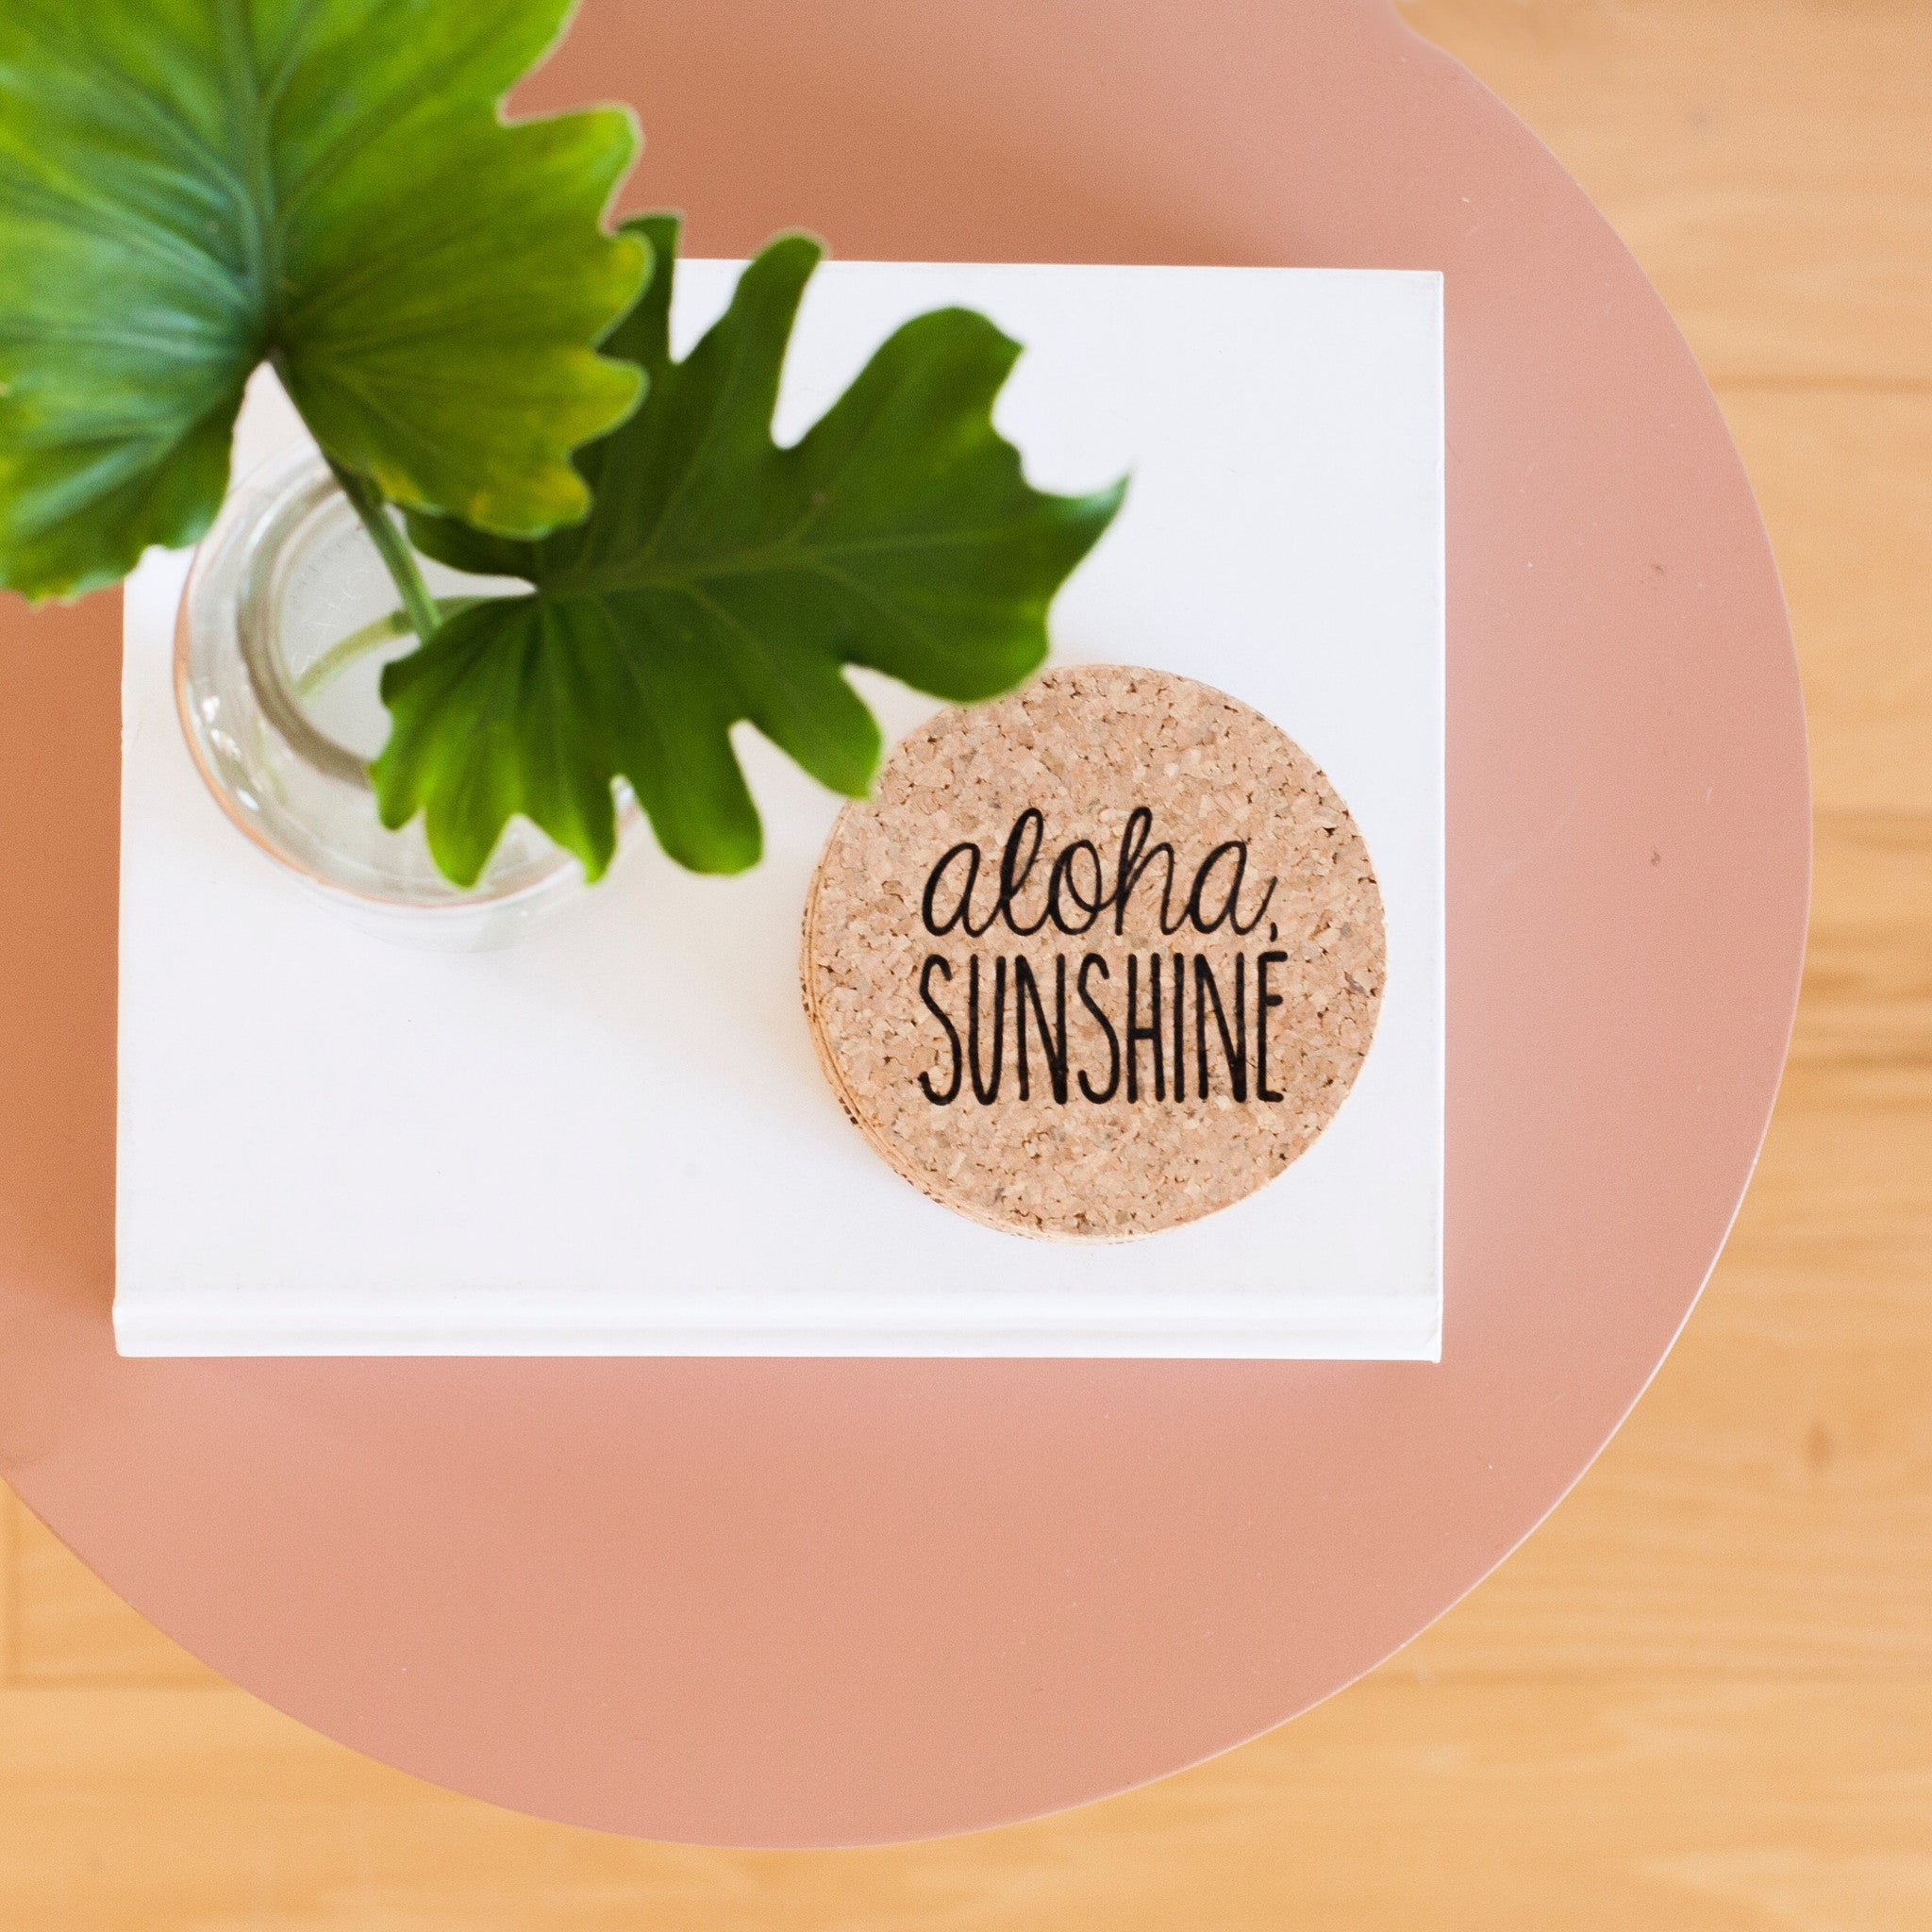 ALOHA SUNSHINE CORK COASTER MADE IN HAWAII